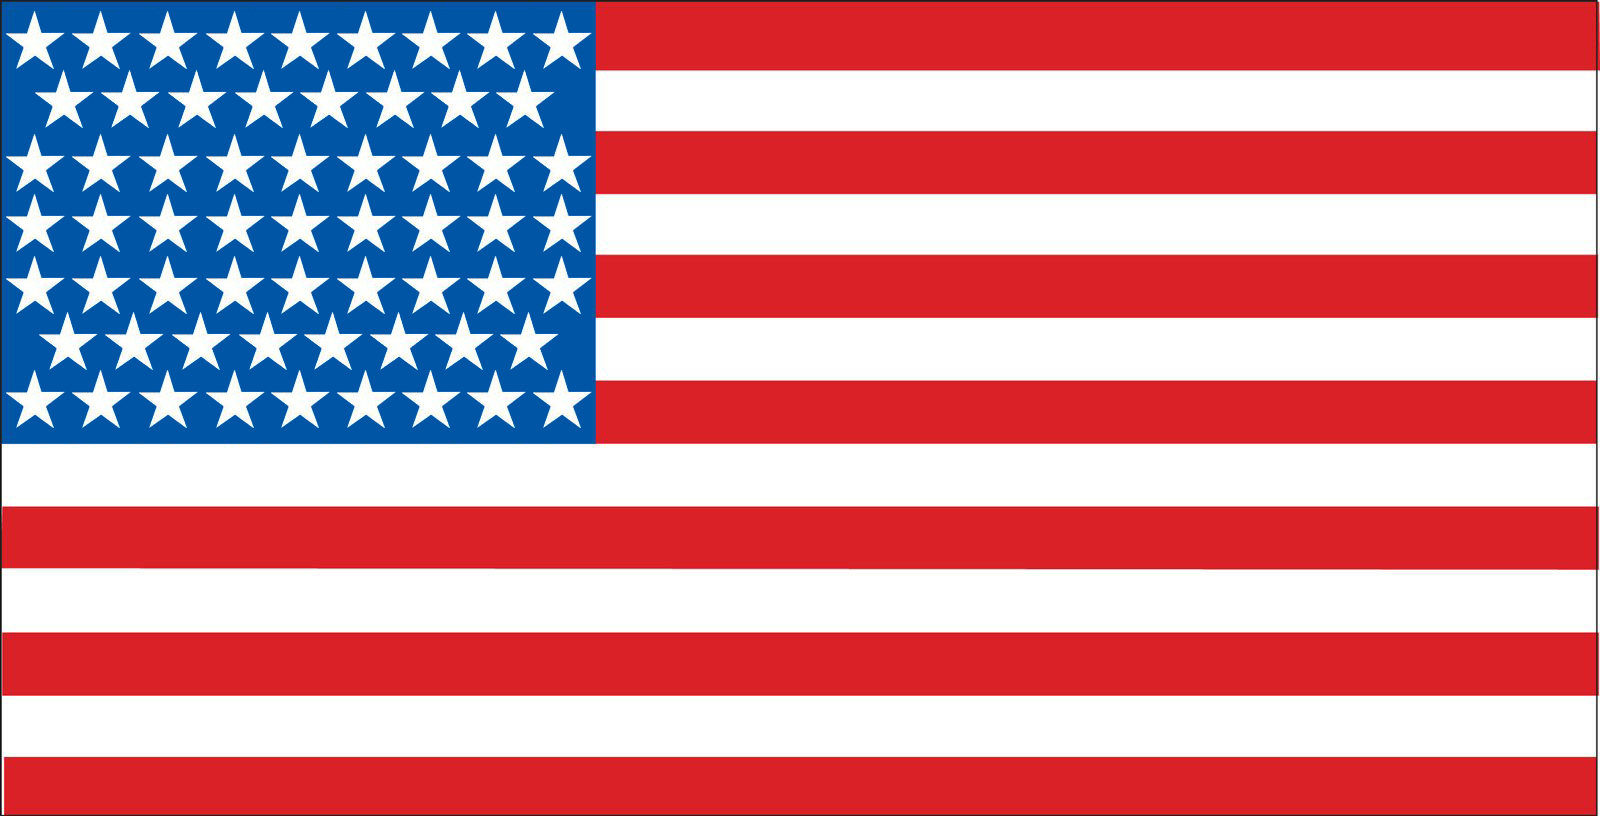 united-states-american-flag-HD-wallpaper